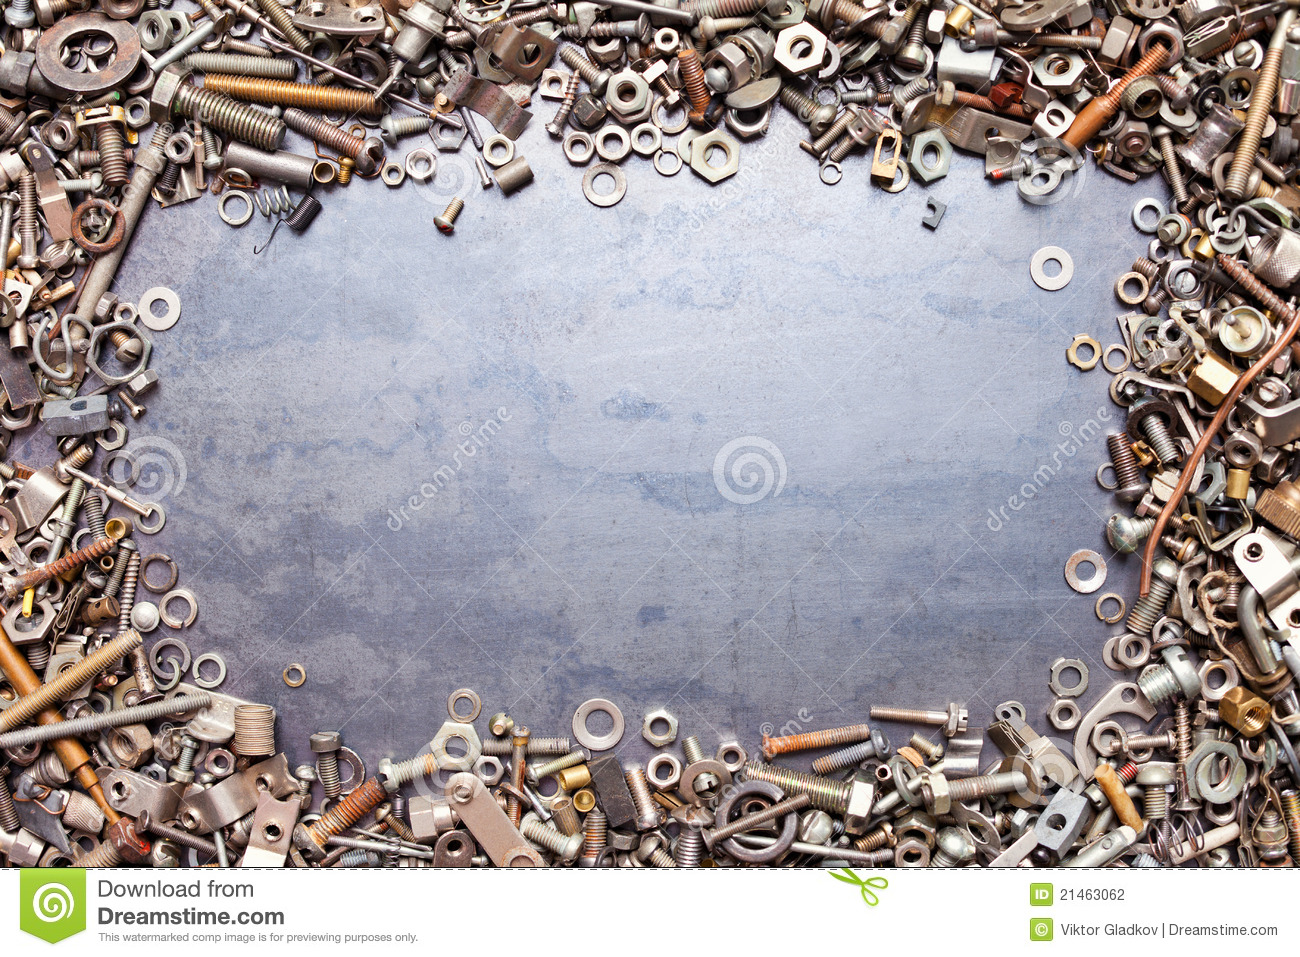 Copper Nuts And Bolts >> Assorted Nuts And Bolts Frame Stock Photo - Image of assorted, bolt: 21463062